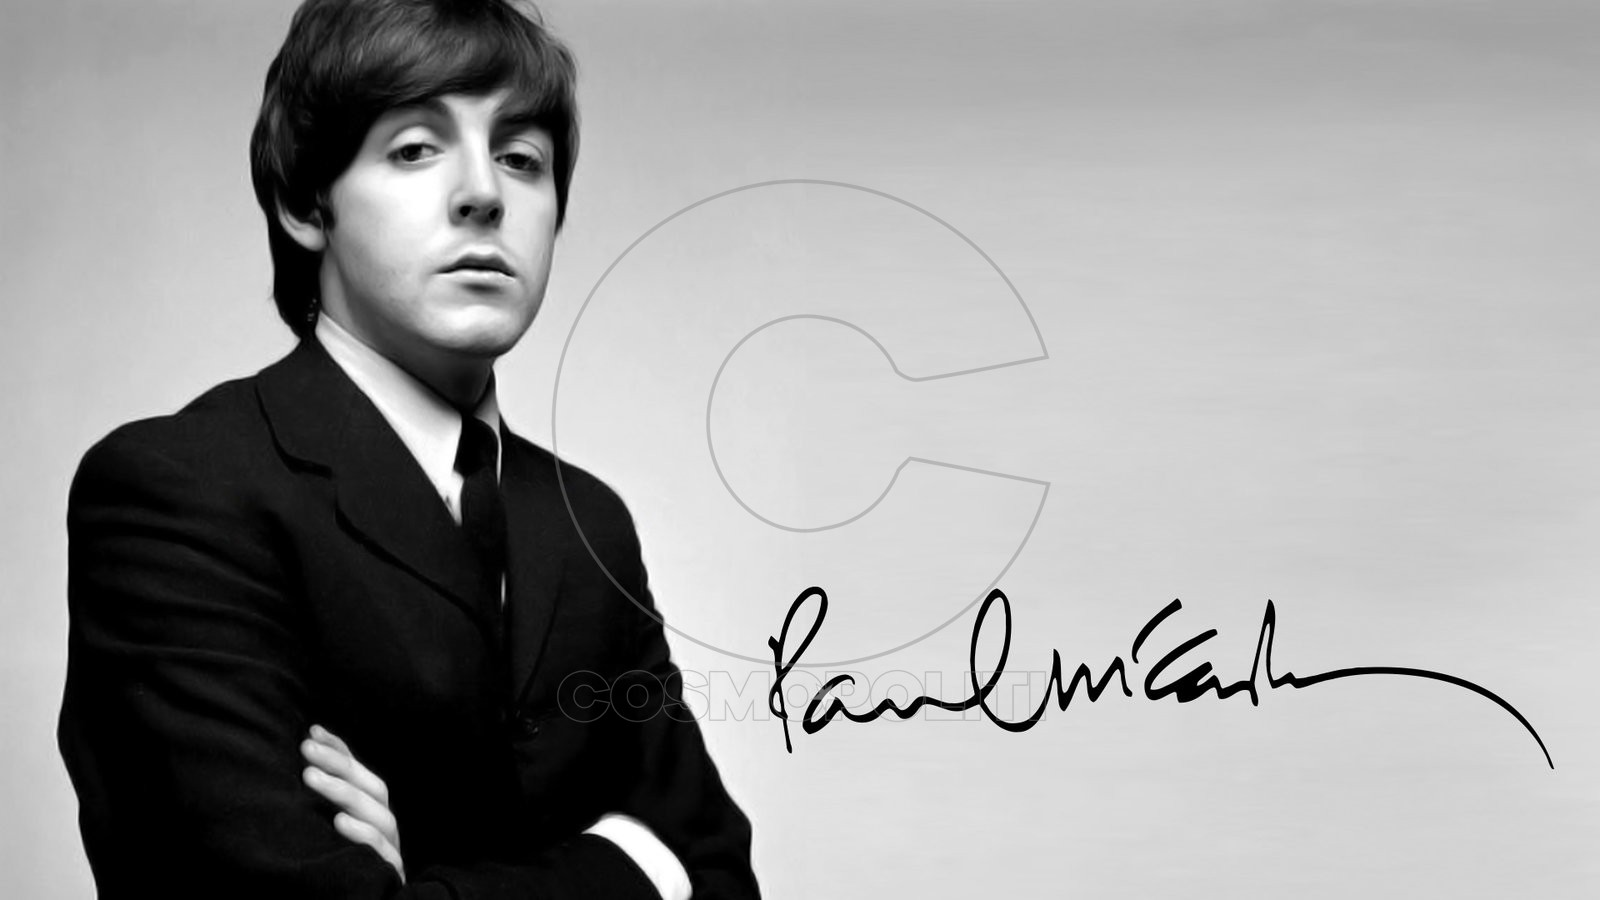 image-paul-mccartney-wallpaper